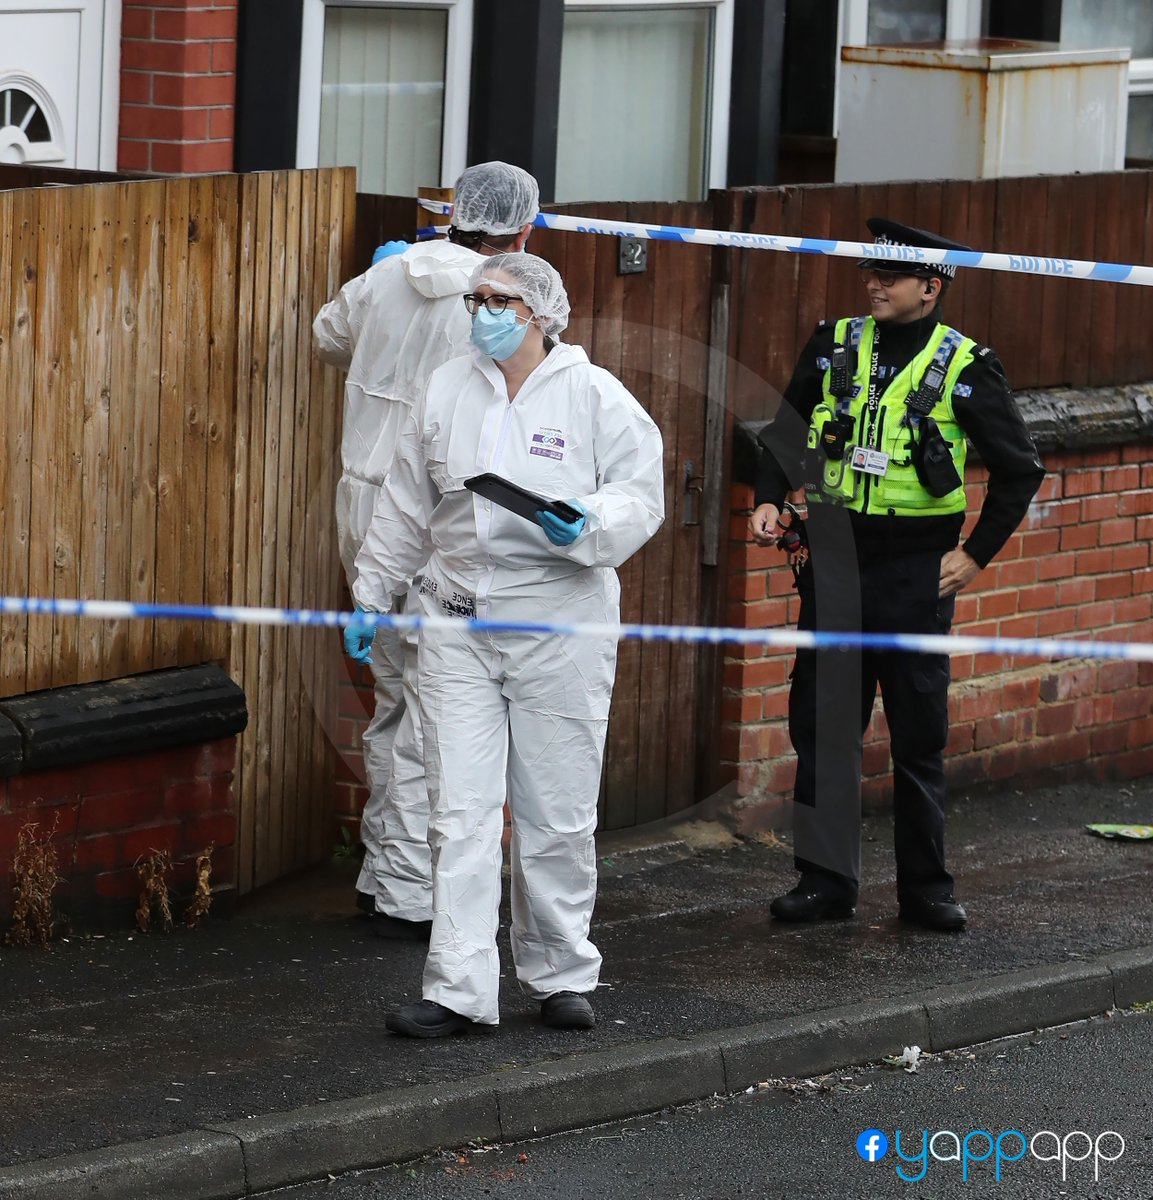 An 'amazing mother' has been #killed in a domestic related #murder in #Leeds https://t.co/gvEga6Thgg https://t.co/dT1PbzFAL1